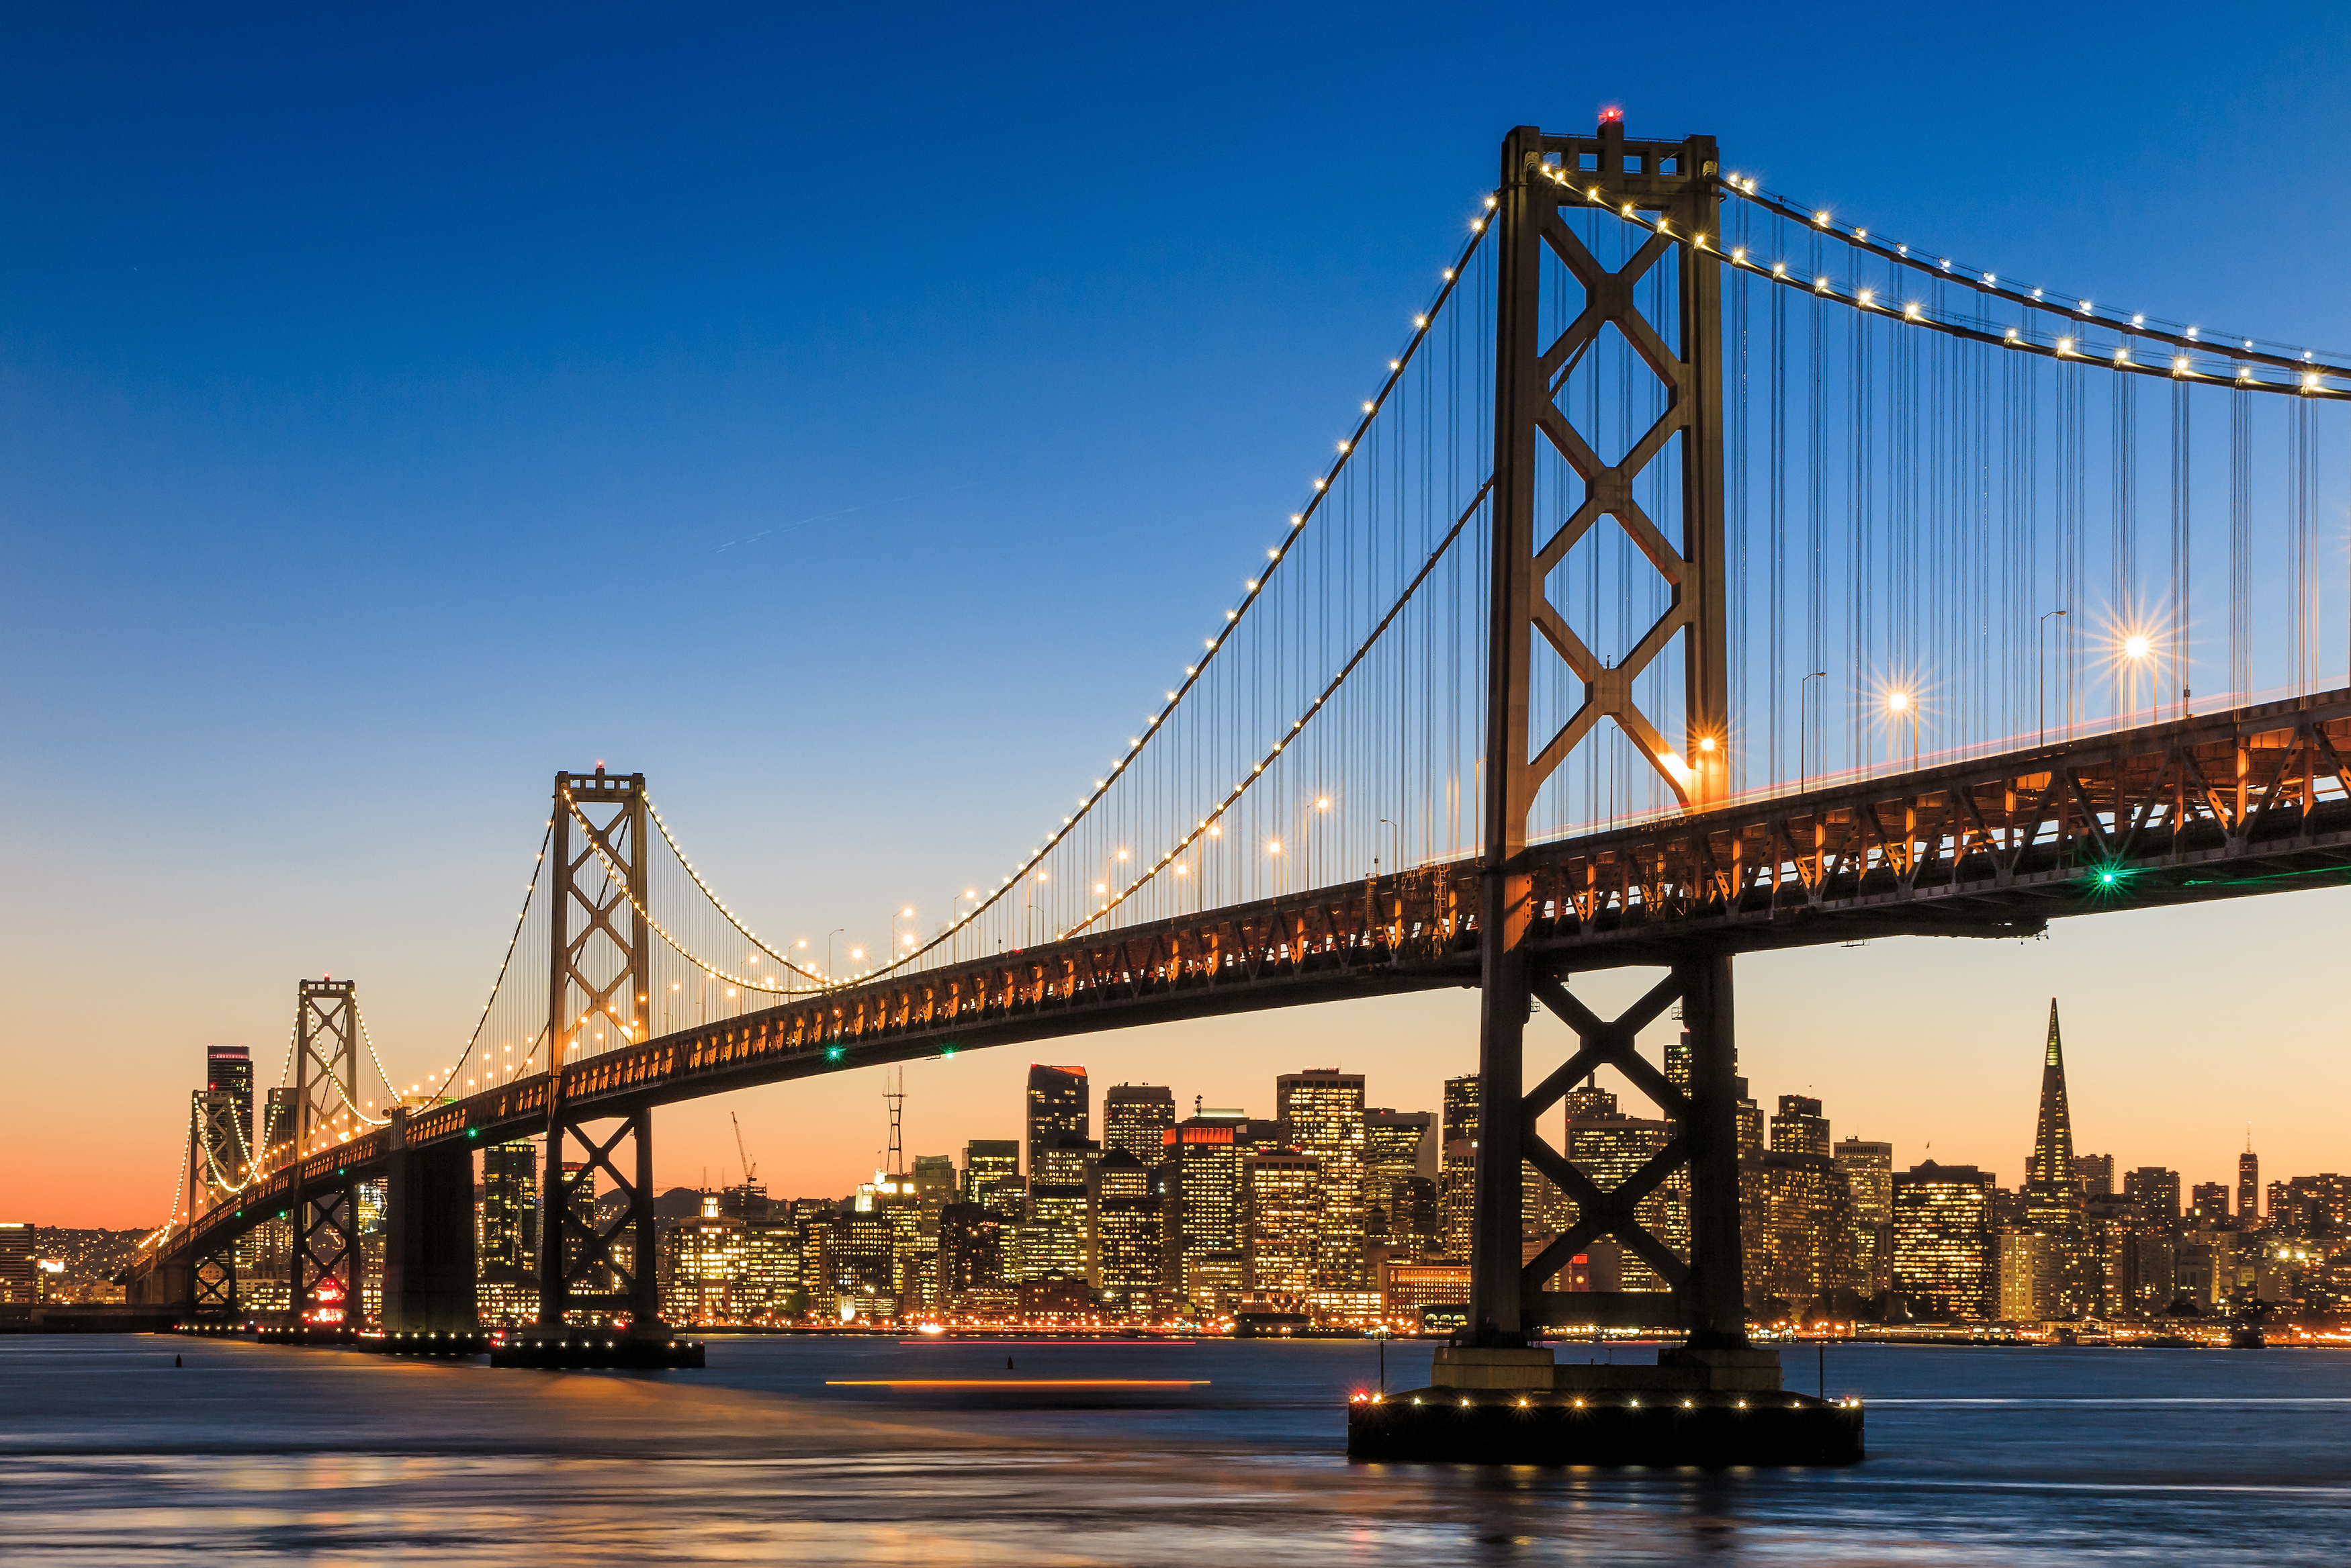 San Francisco skyline and Bay Bridge at